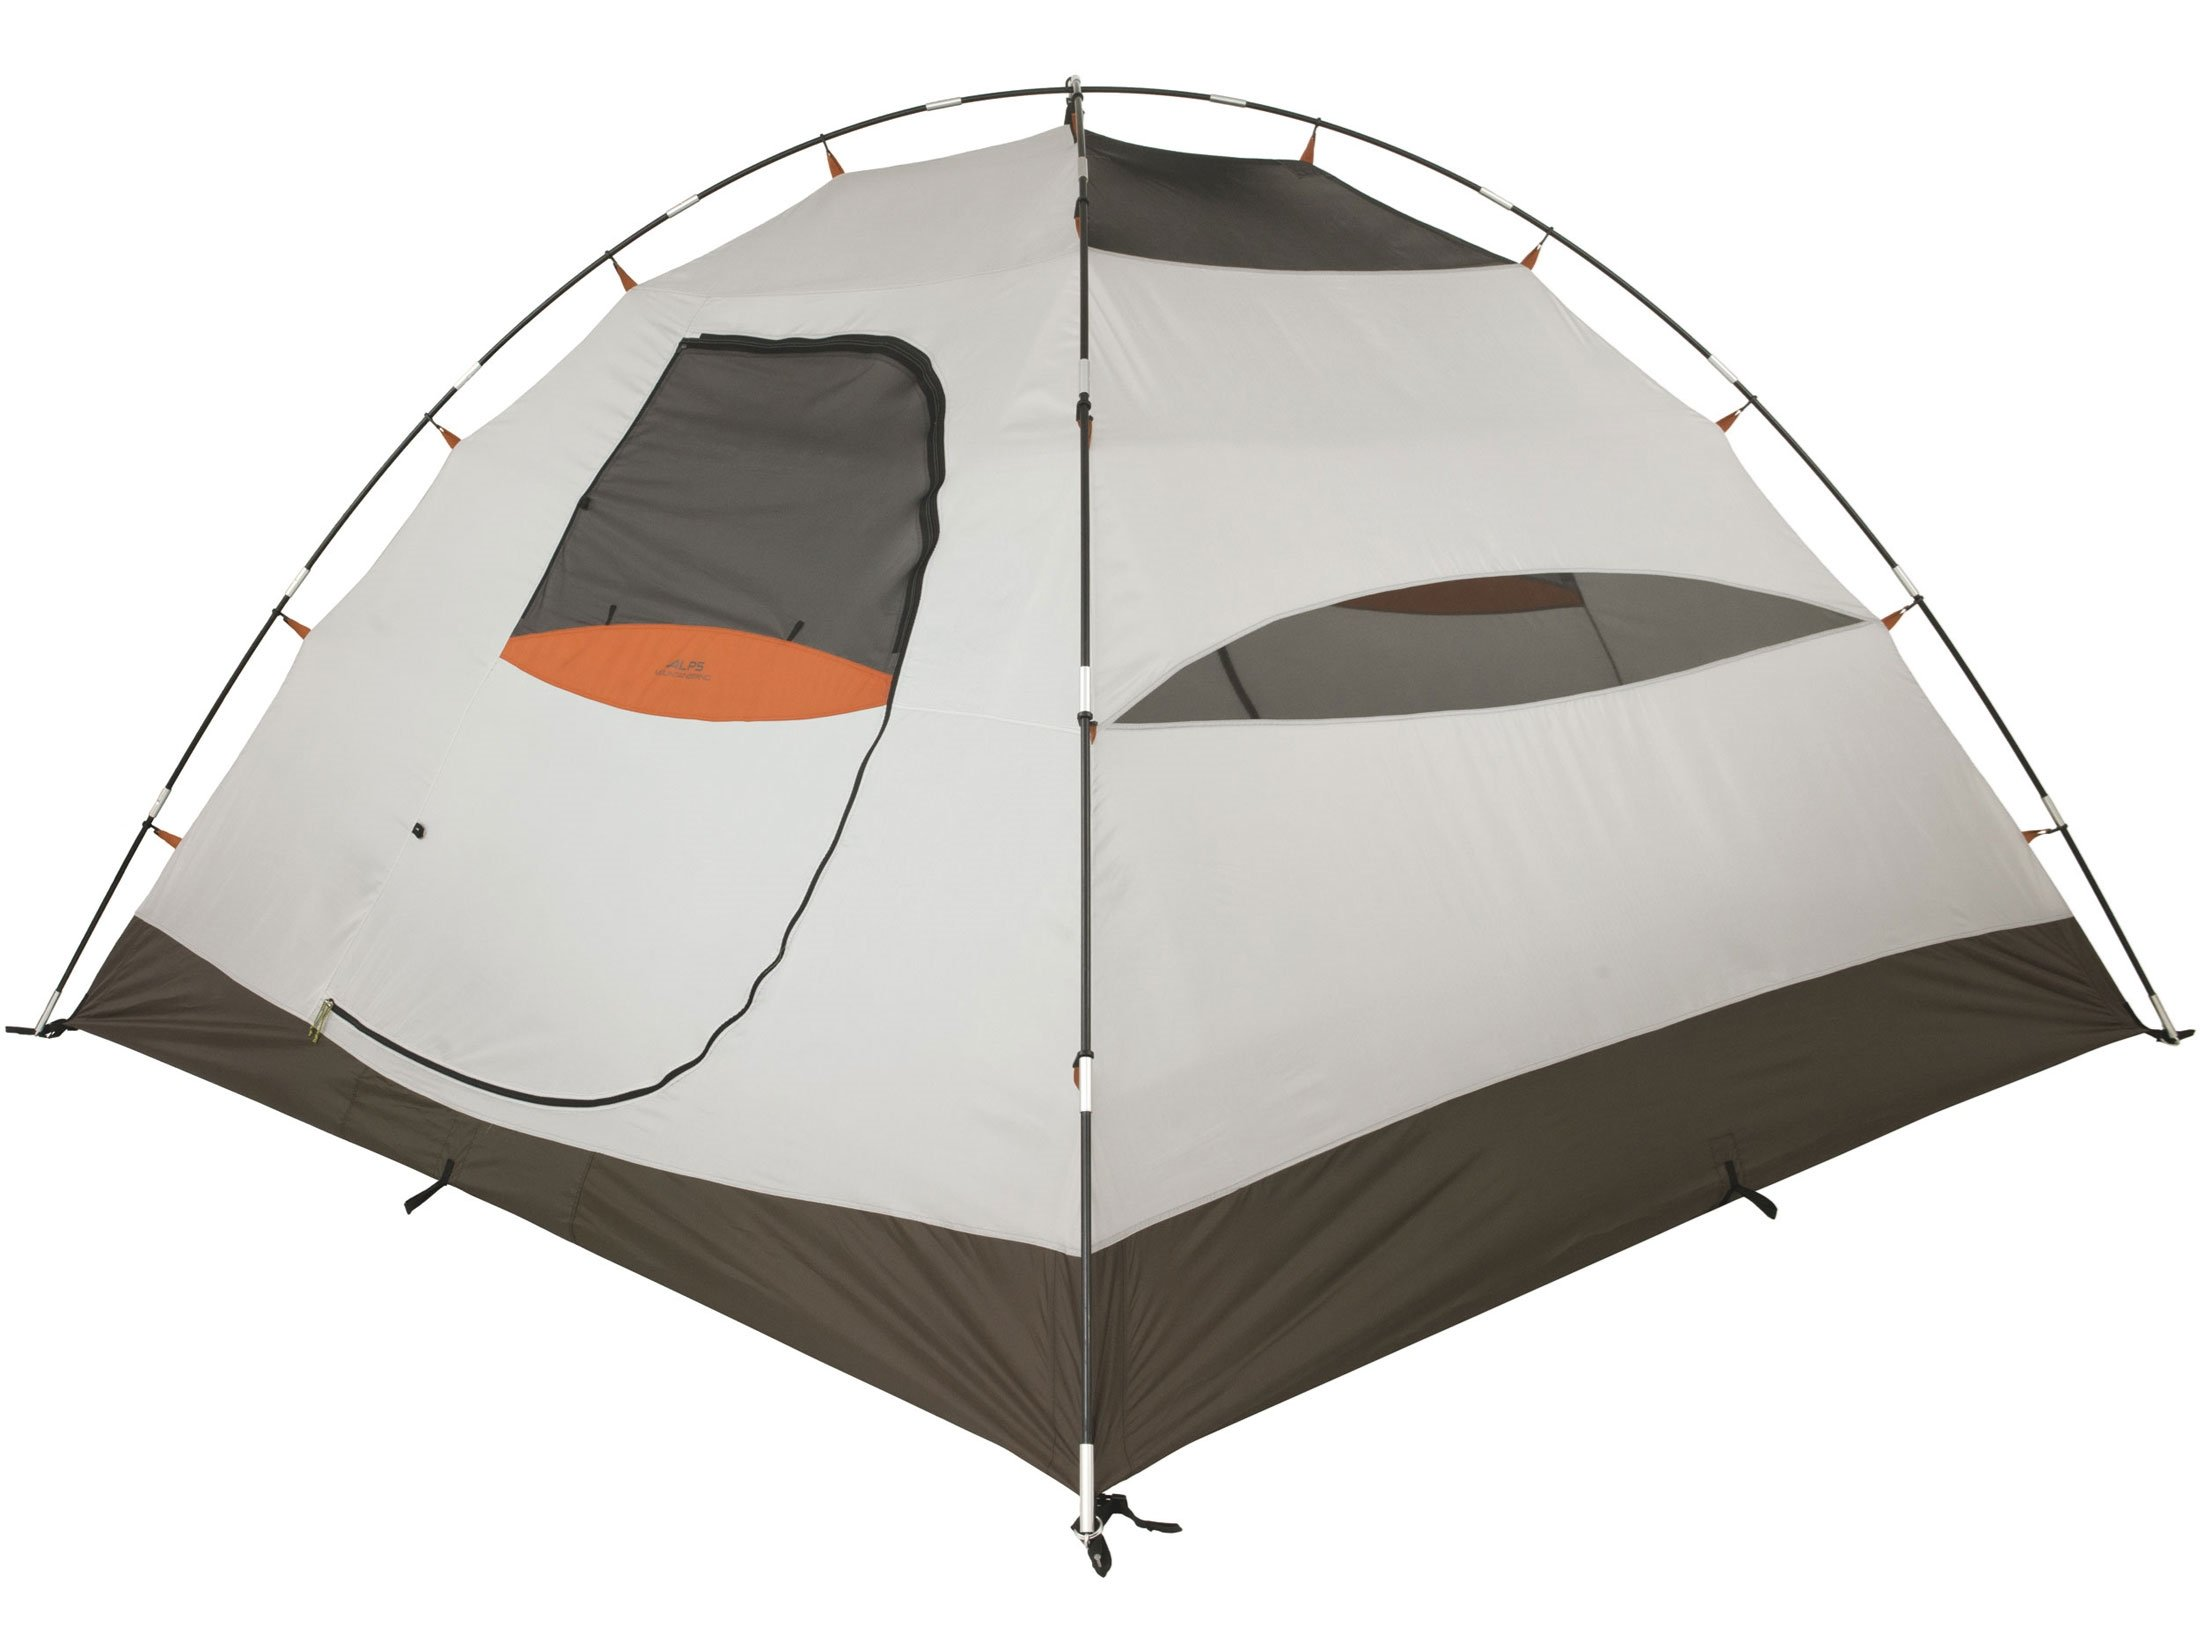 ALPS Mountaineering Taurus 6 Dome Tent 120'' x 120'' x 72'' Polyester Green and Orange